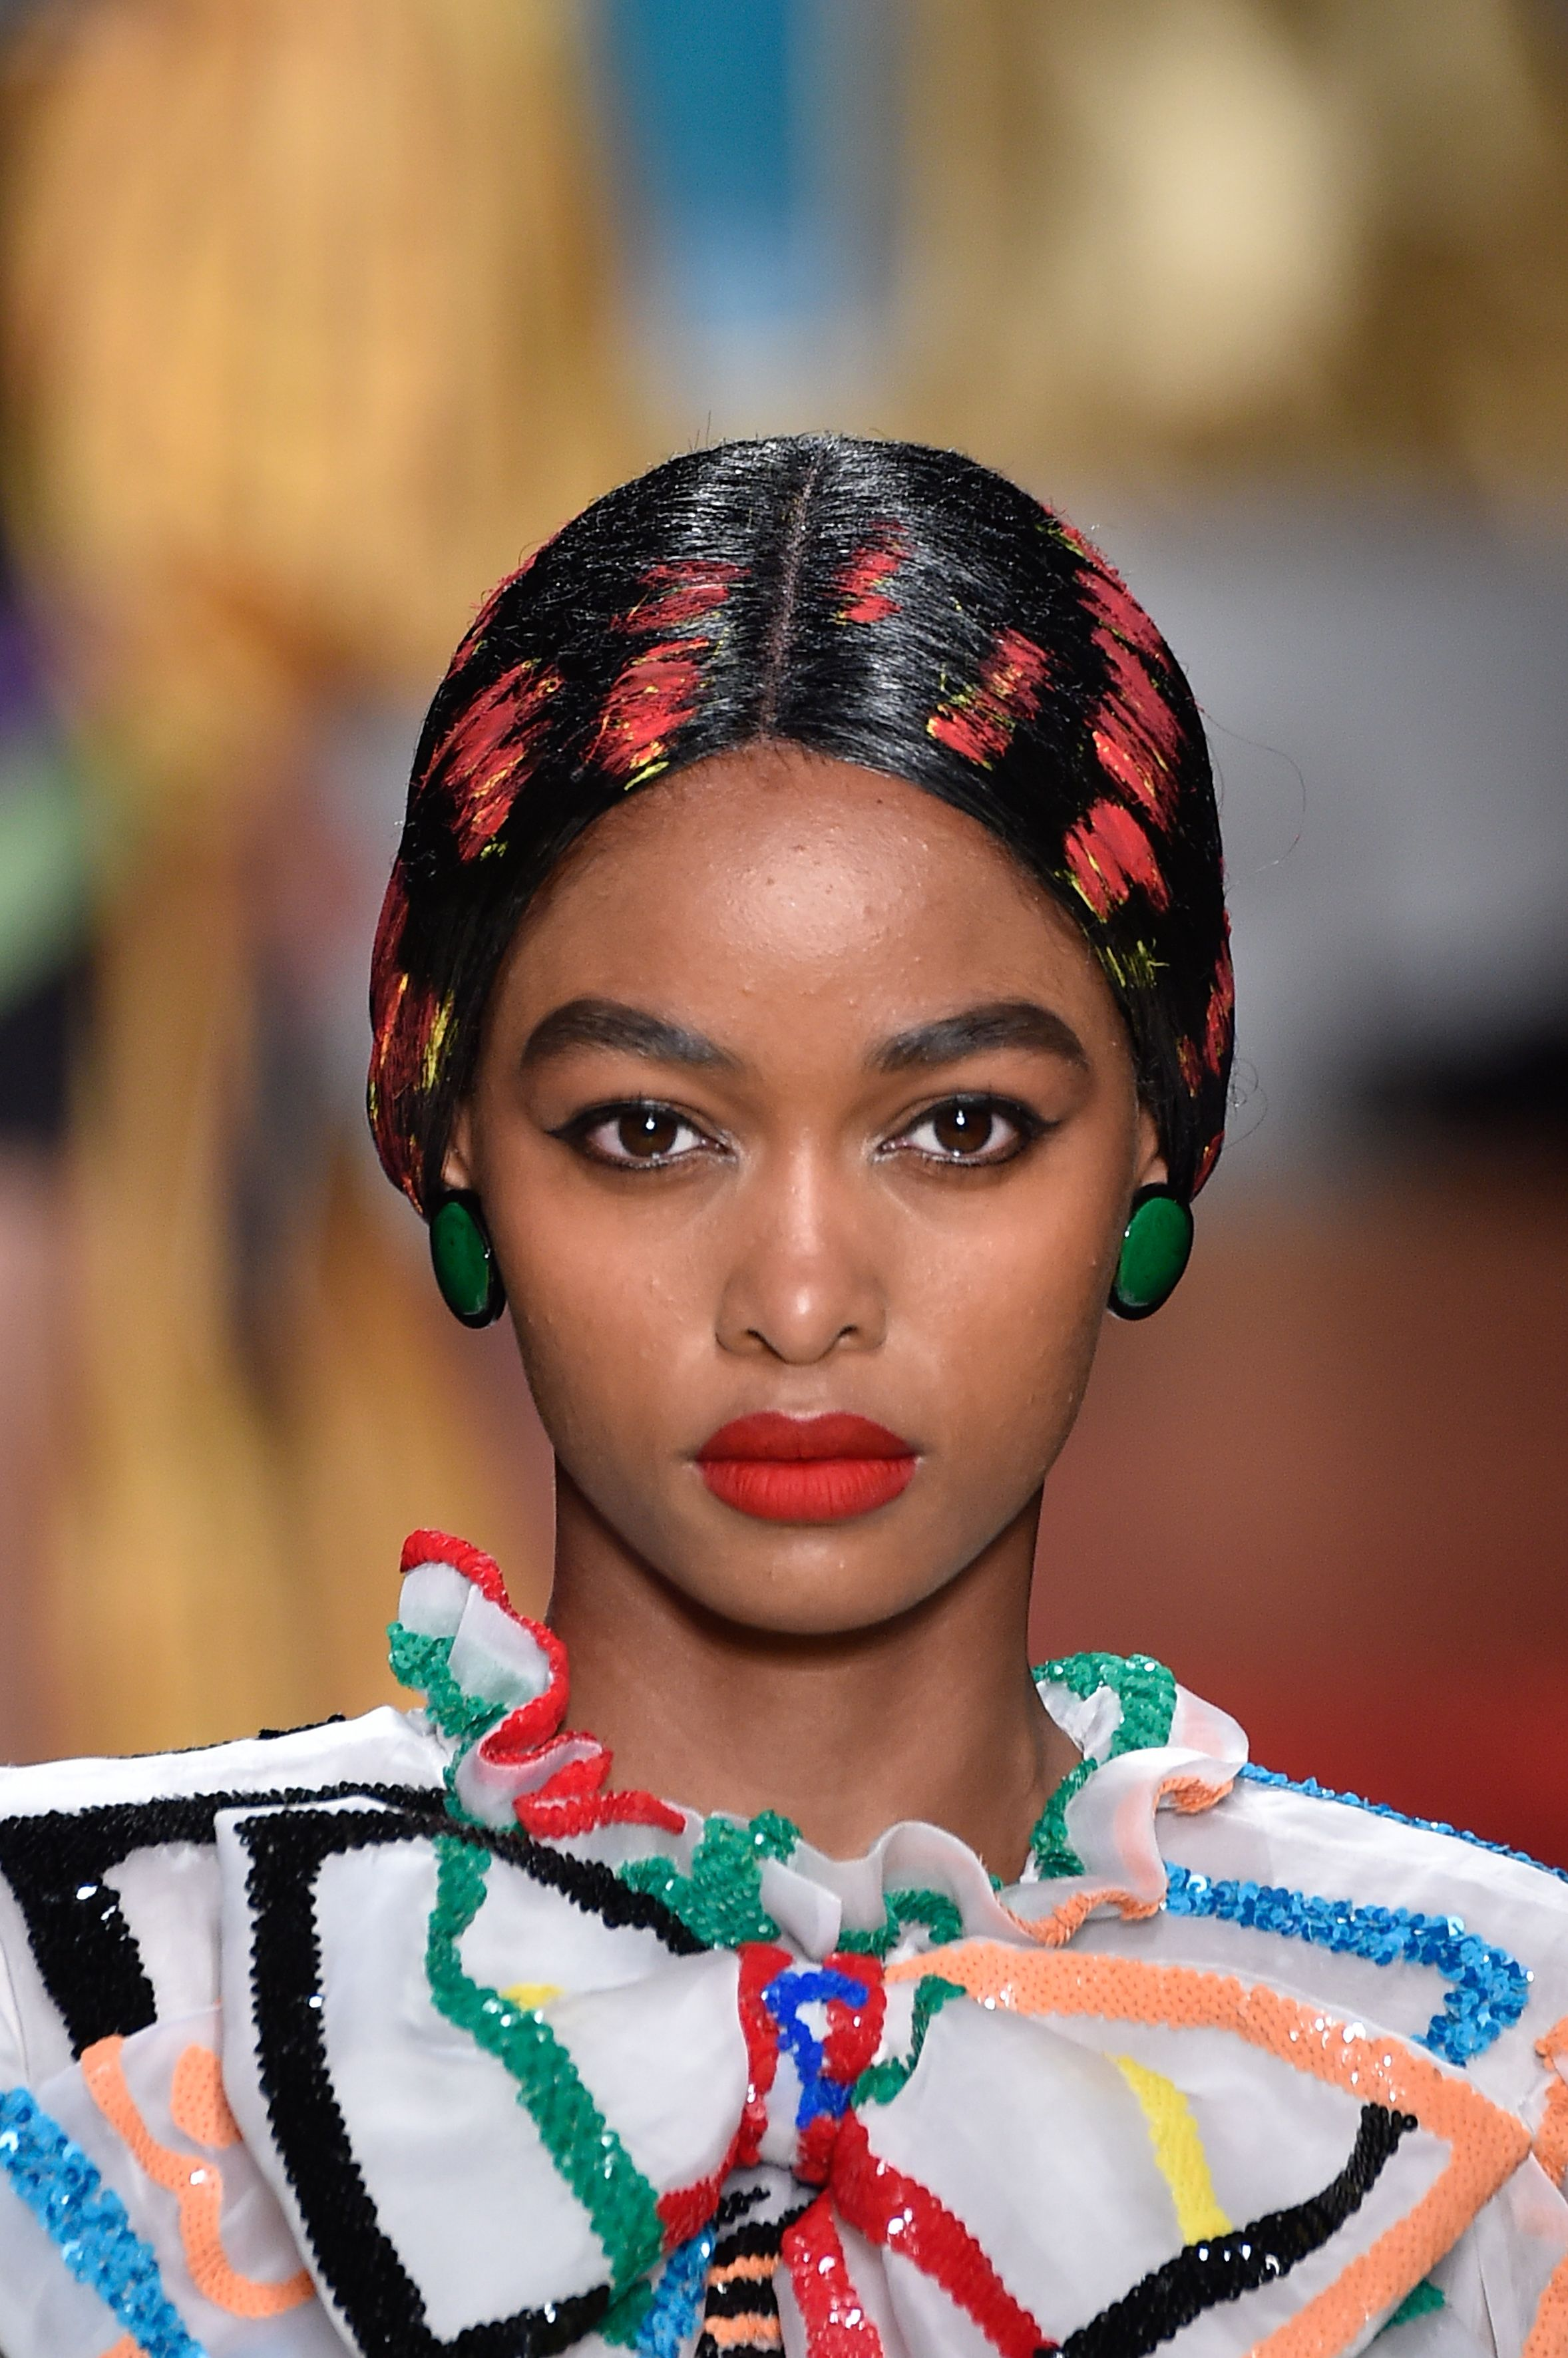 The Best Beauty Looks from Milan Fashion Week